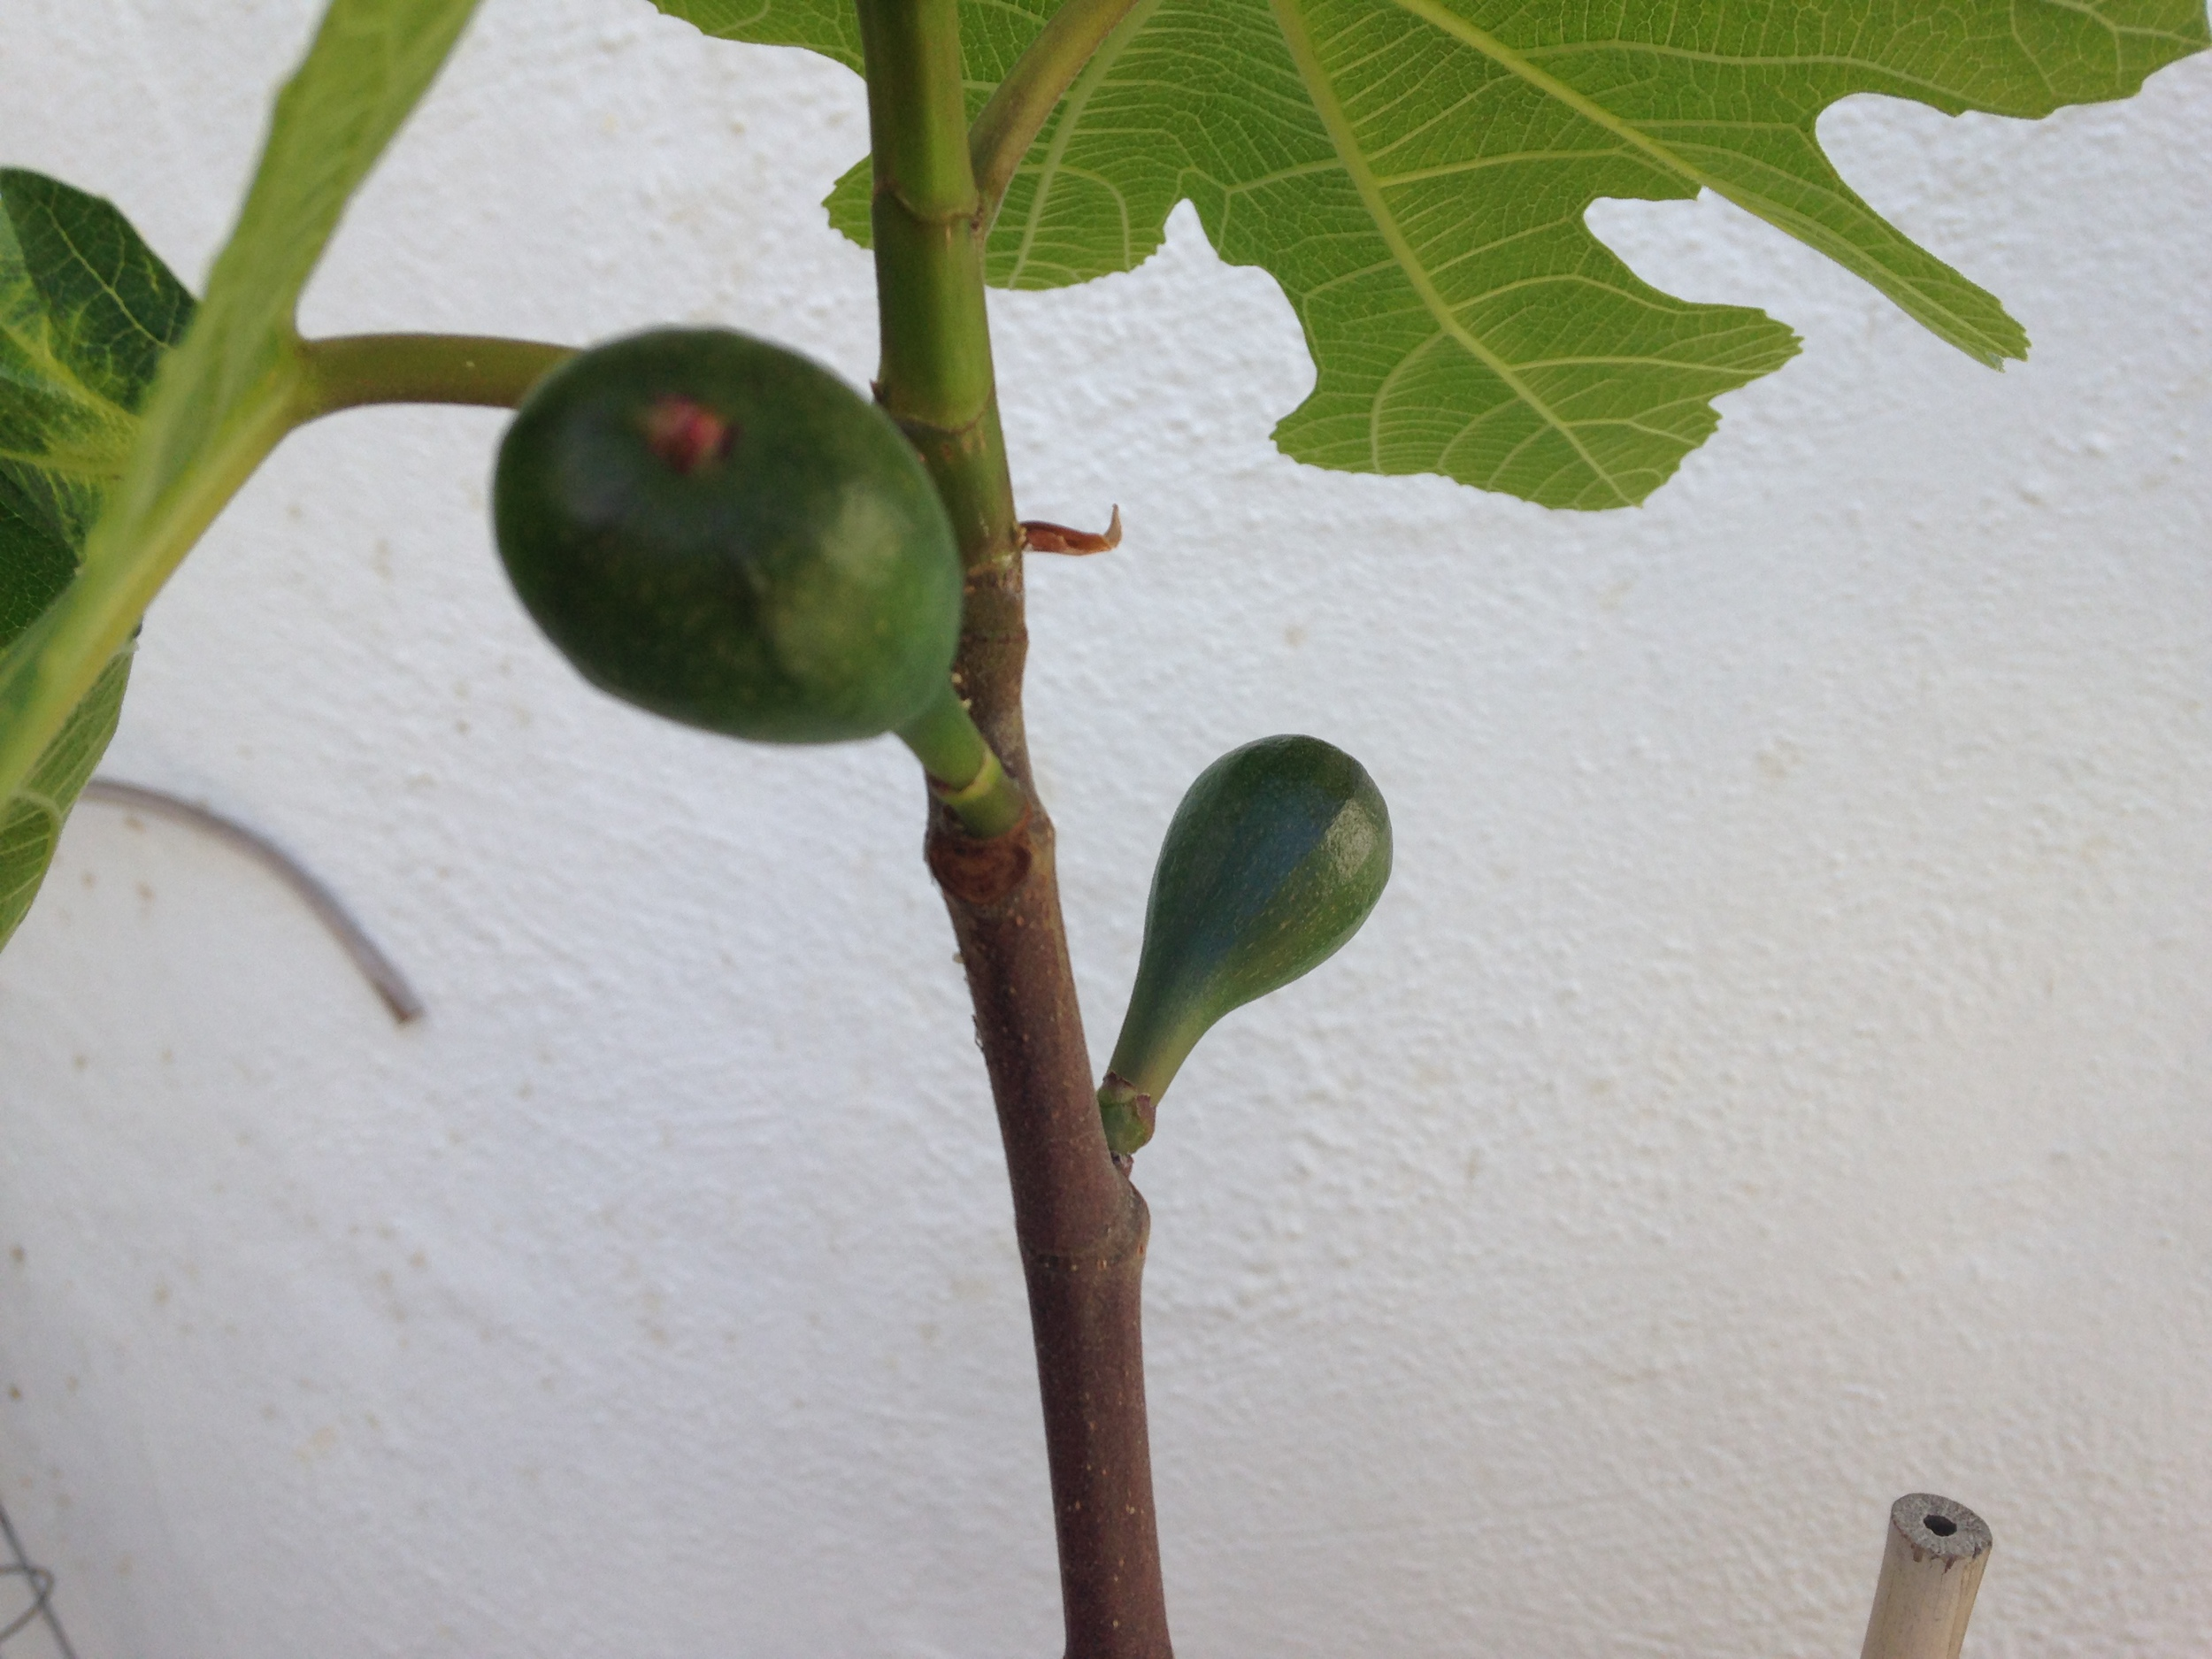 Spring leaves and the first figs appear.